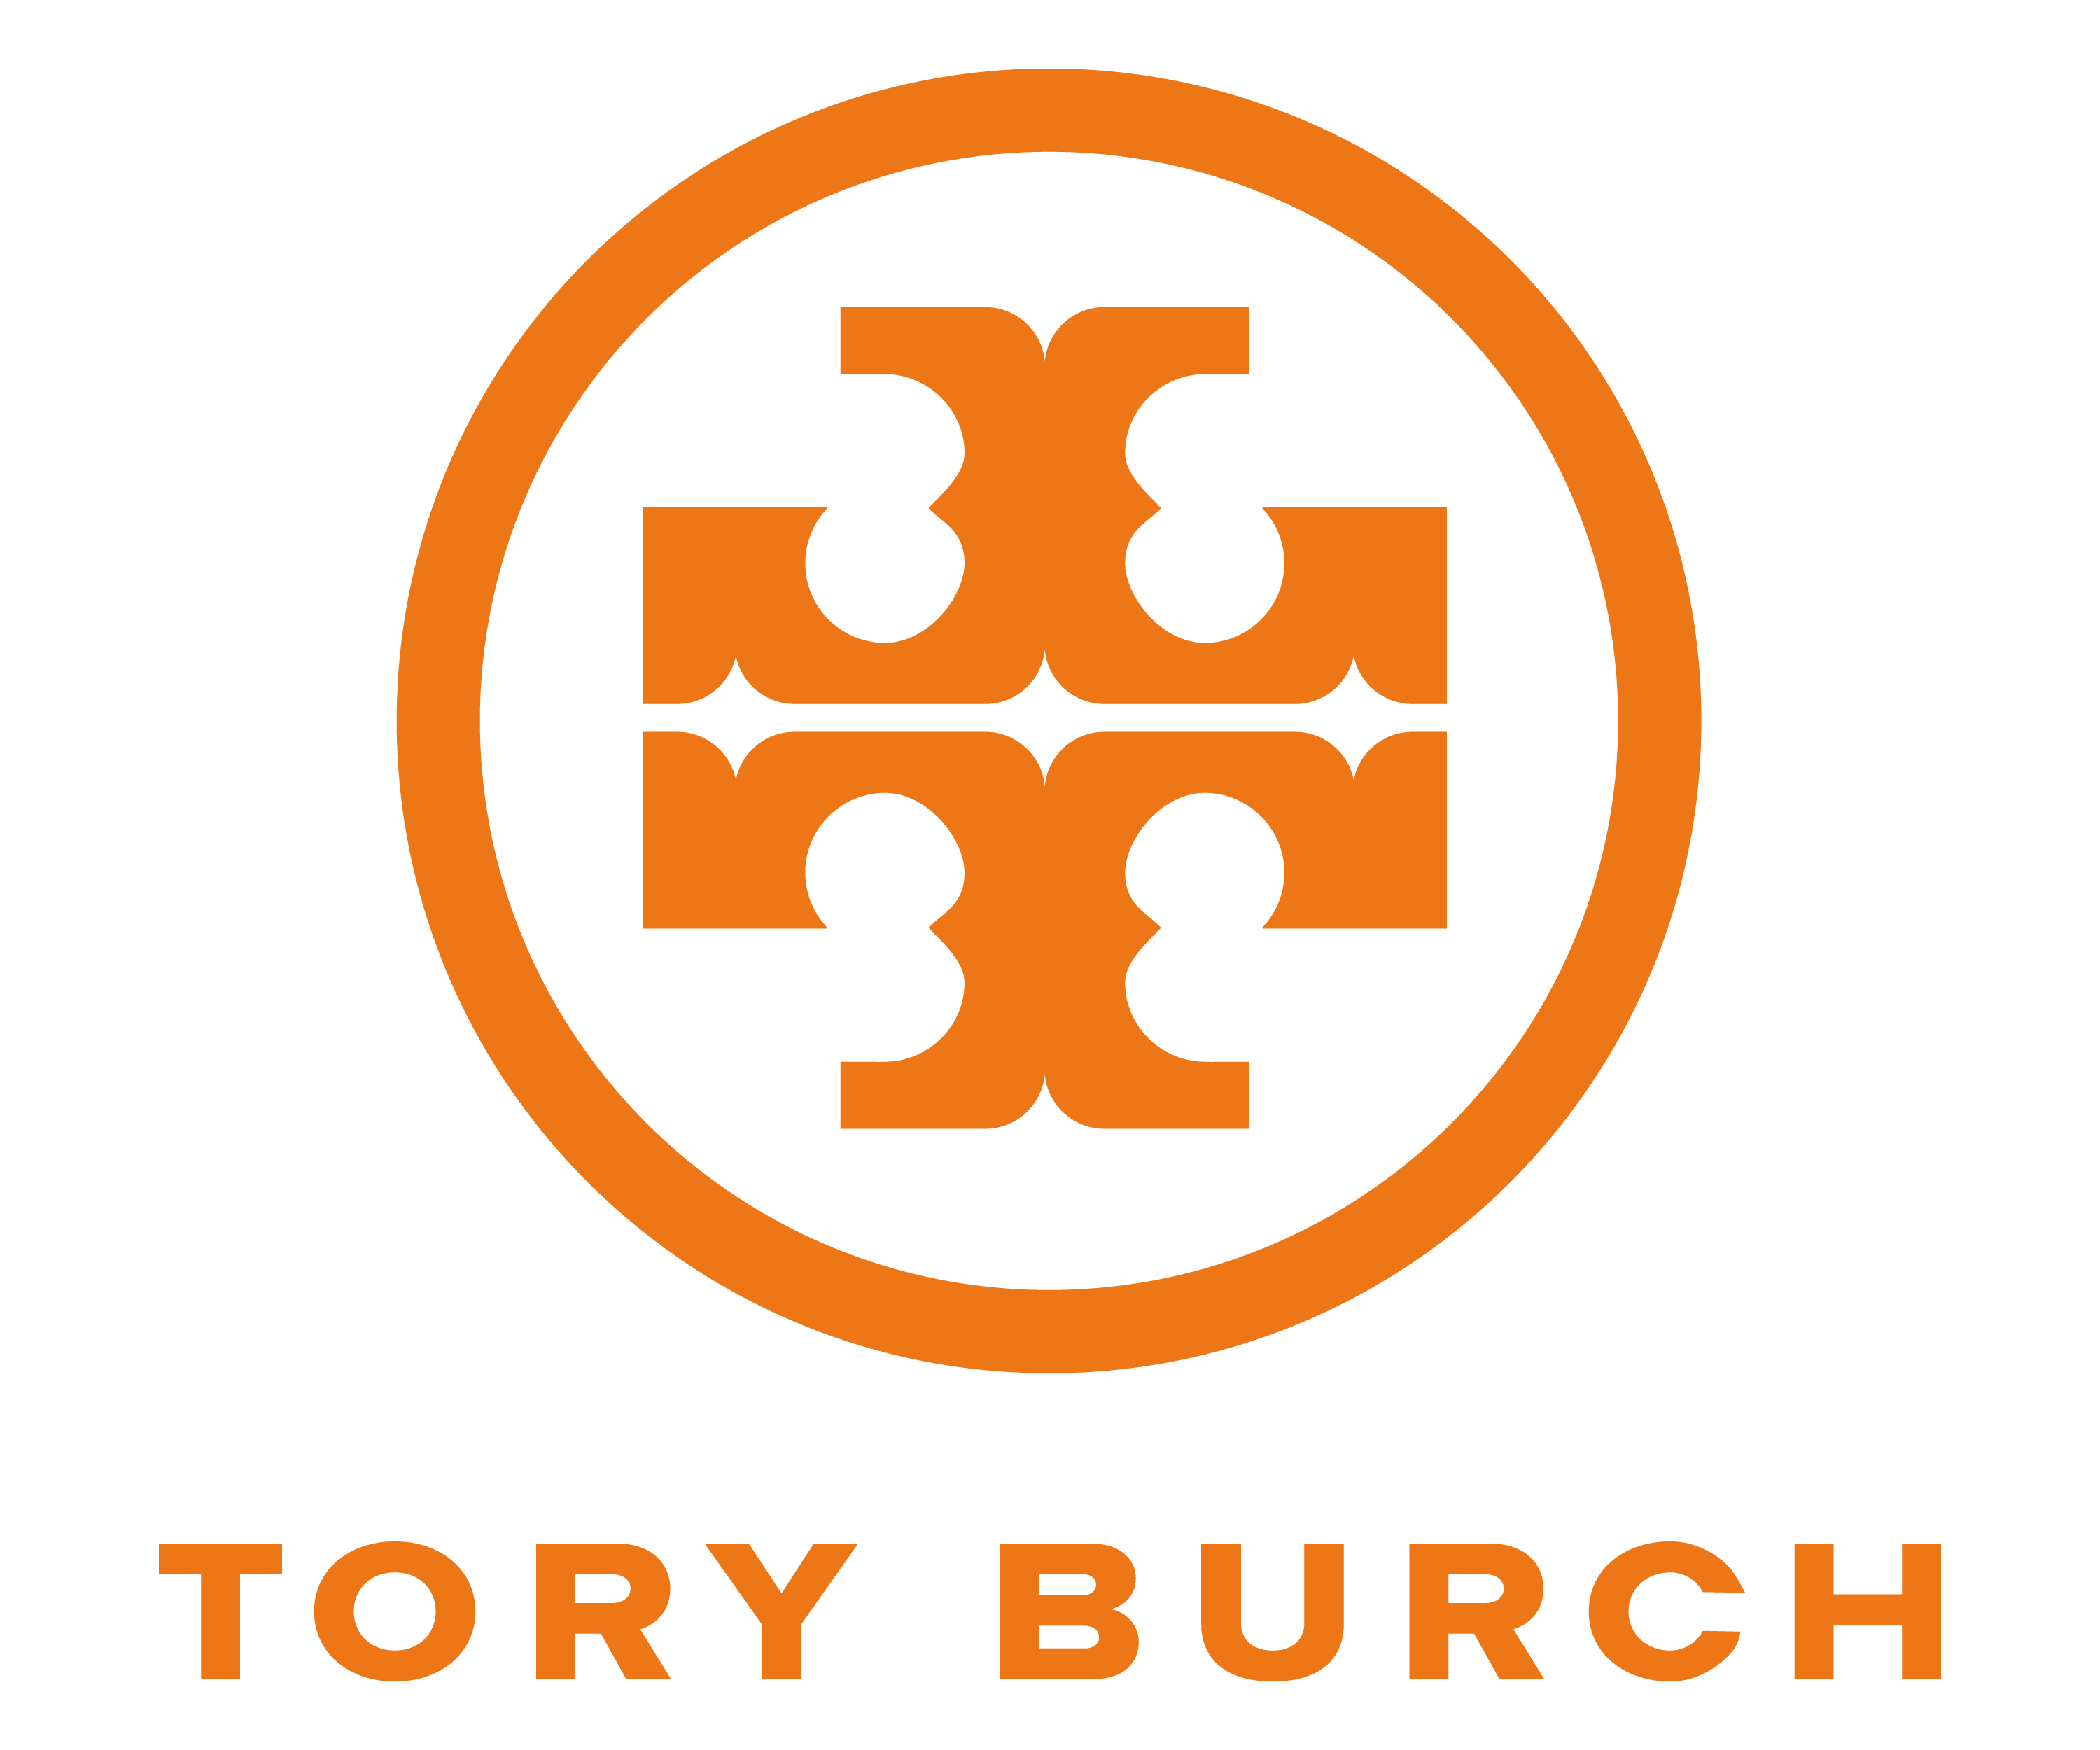 Different Car Logos >> Tory Burch Logo, Tory Burch Symbol, Meaning, History and Evolution